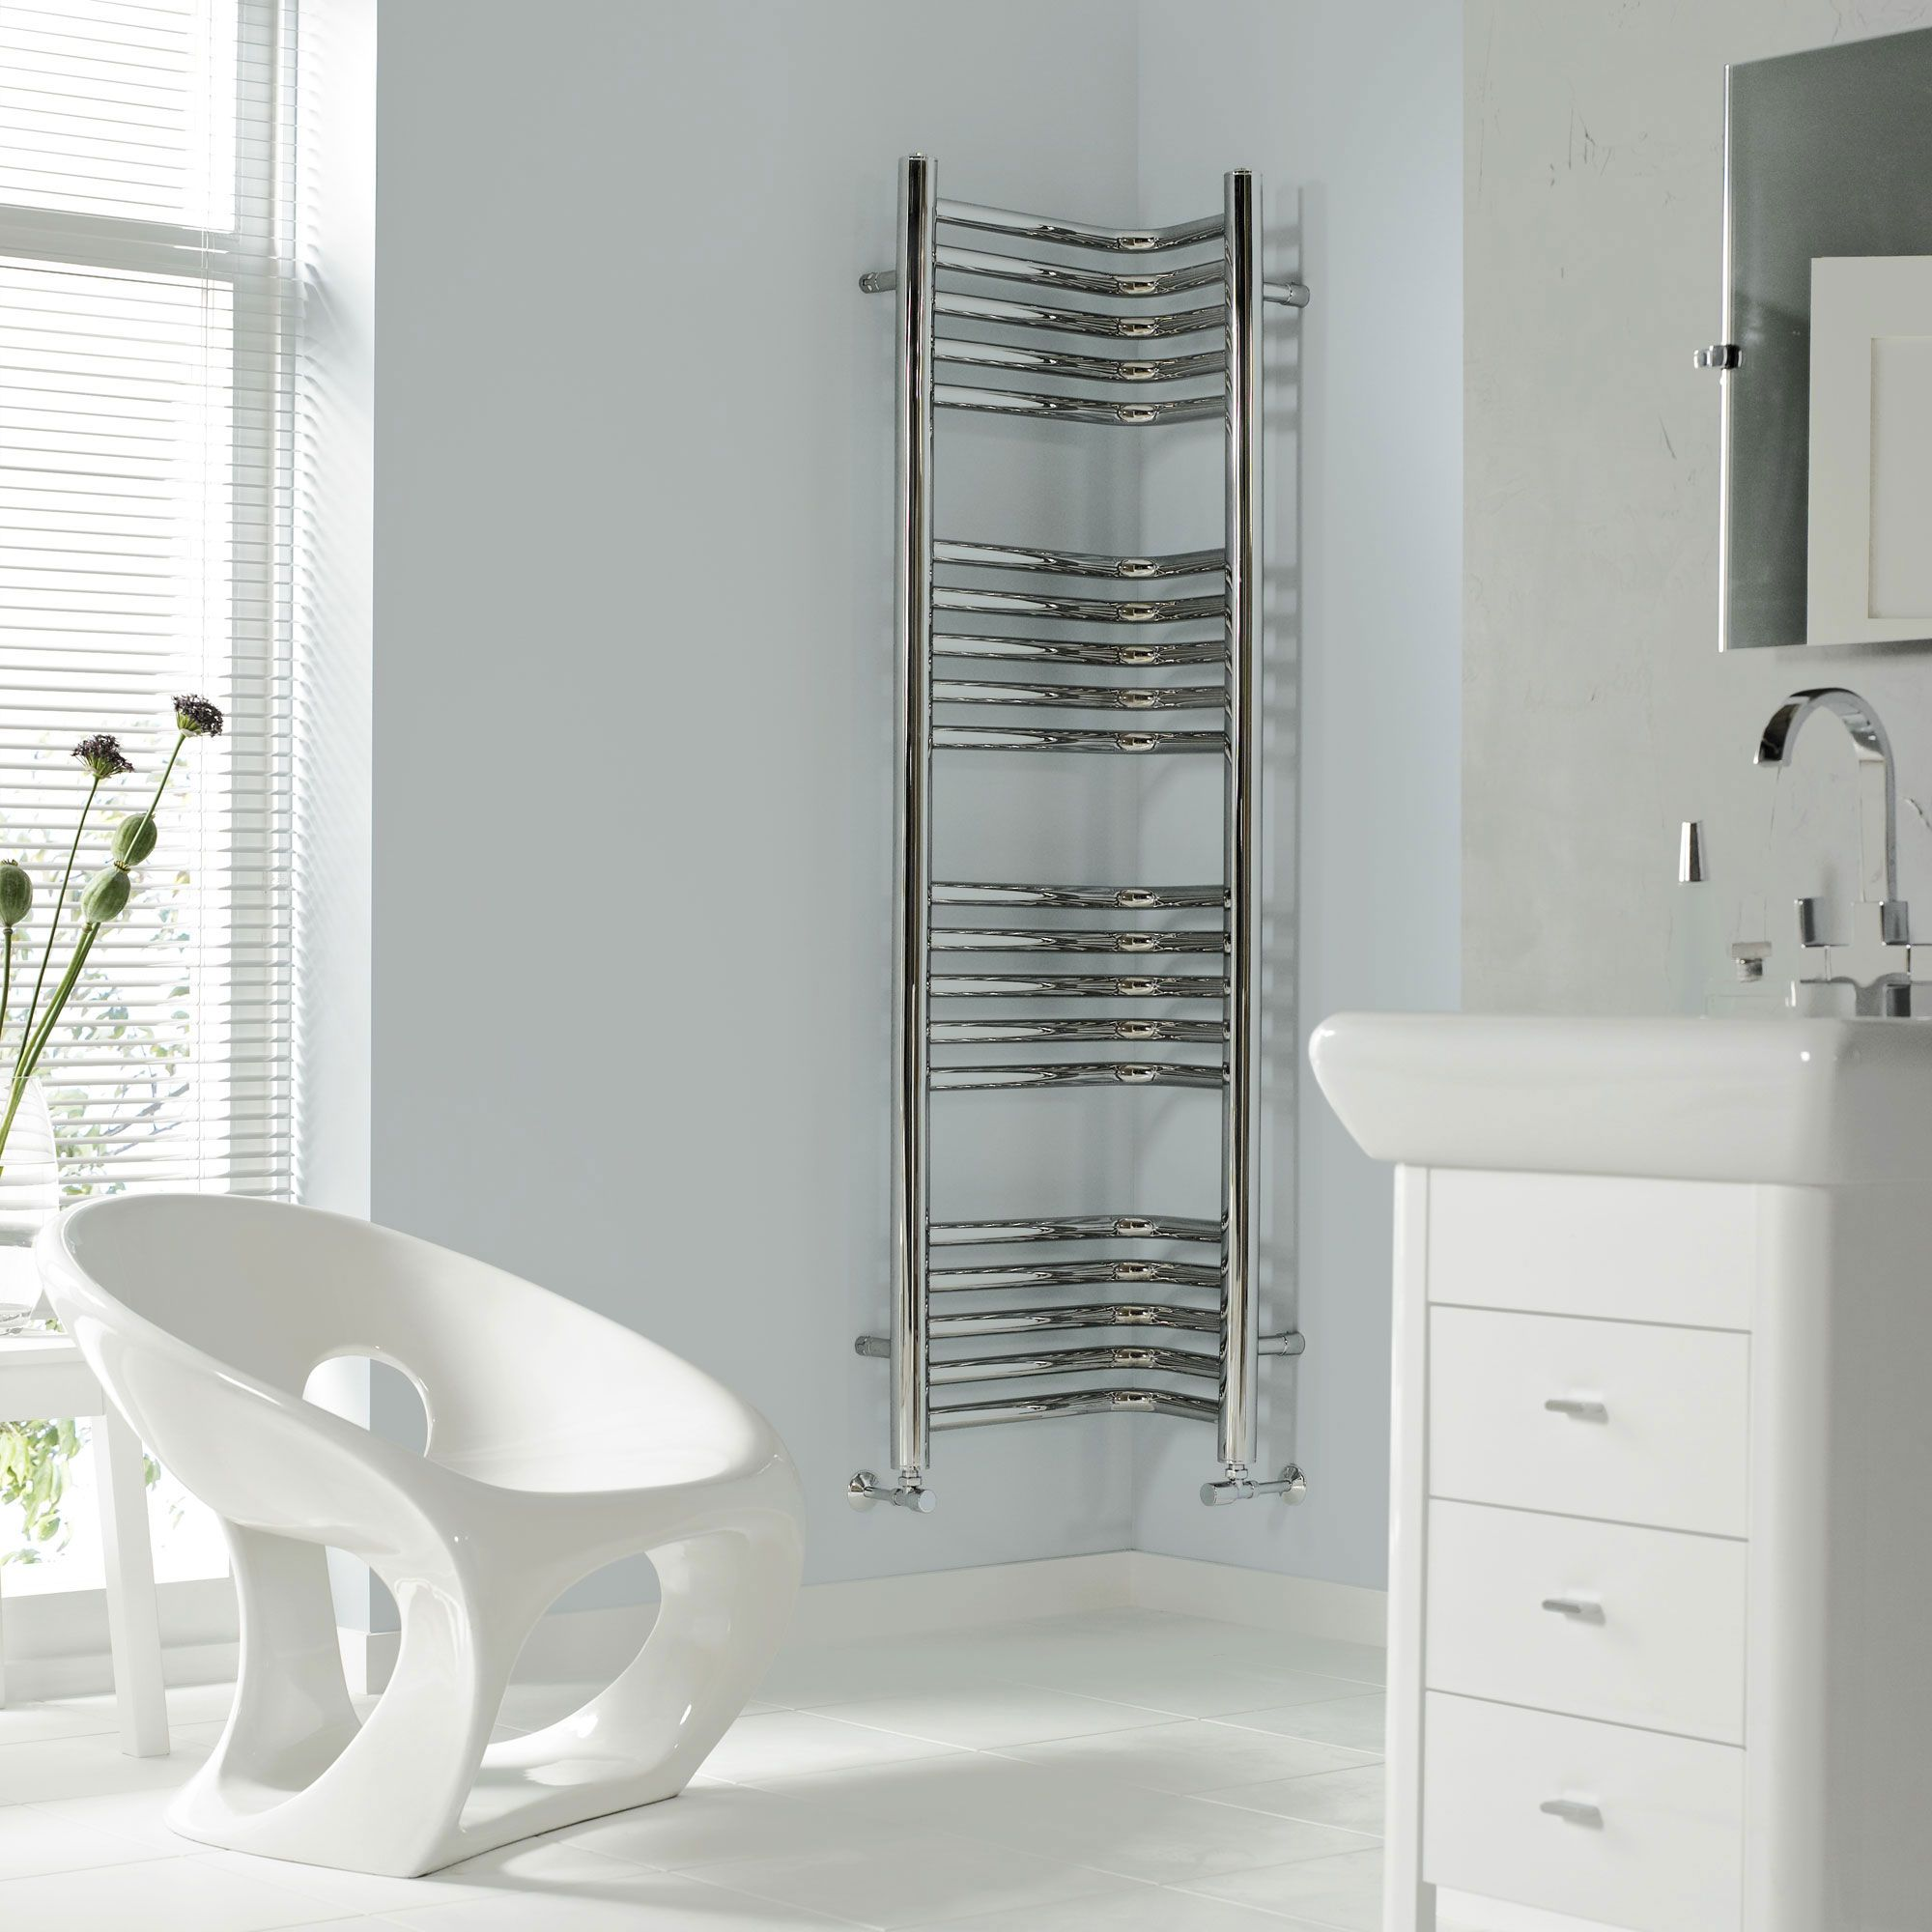 Introducing the Vogue Inttra Heated Towel Rail